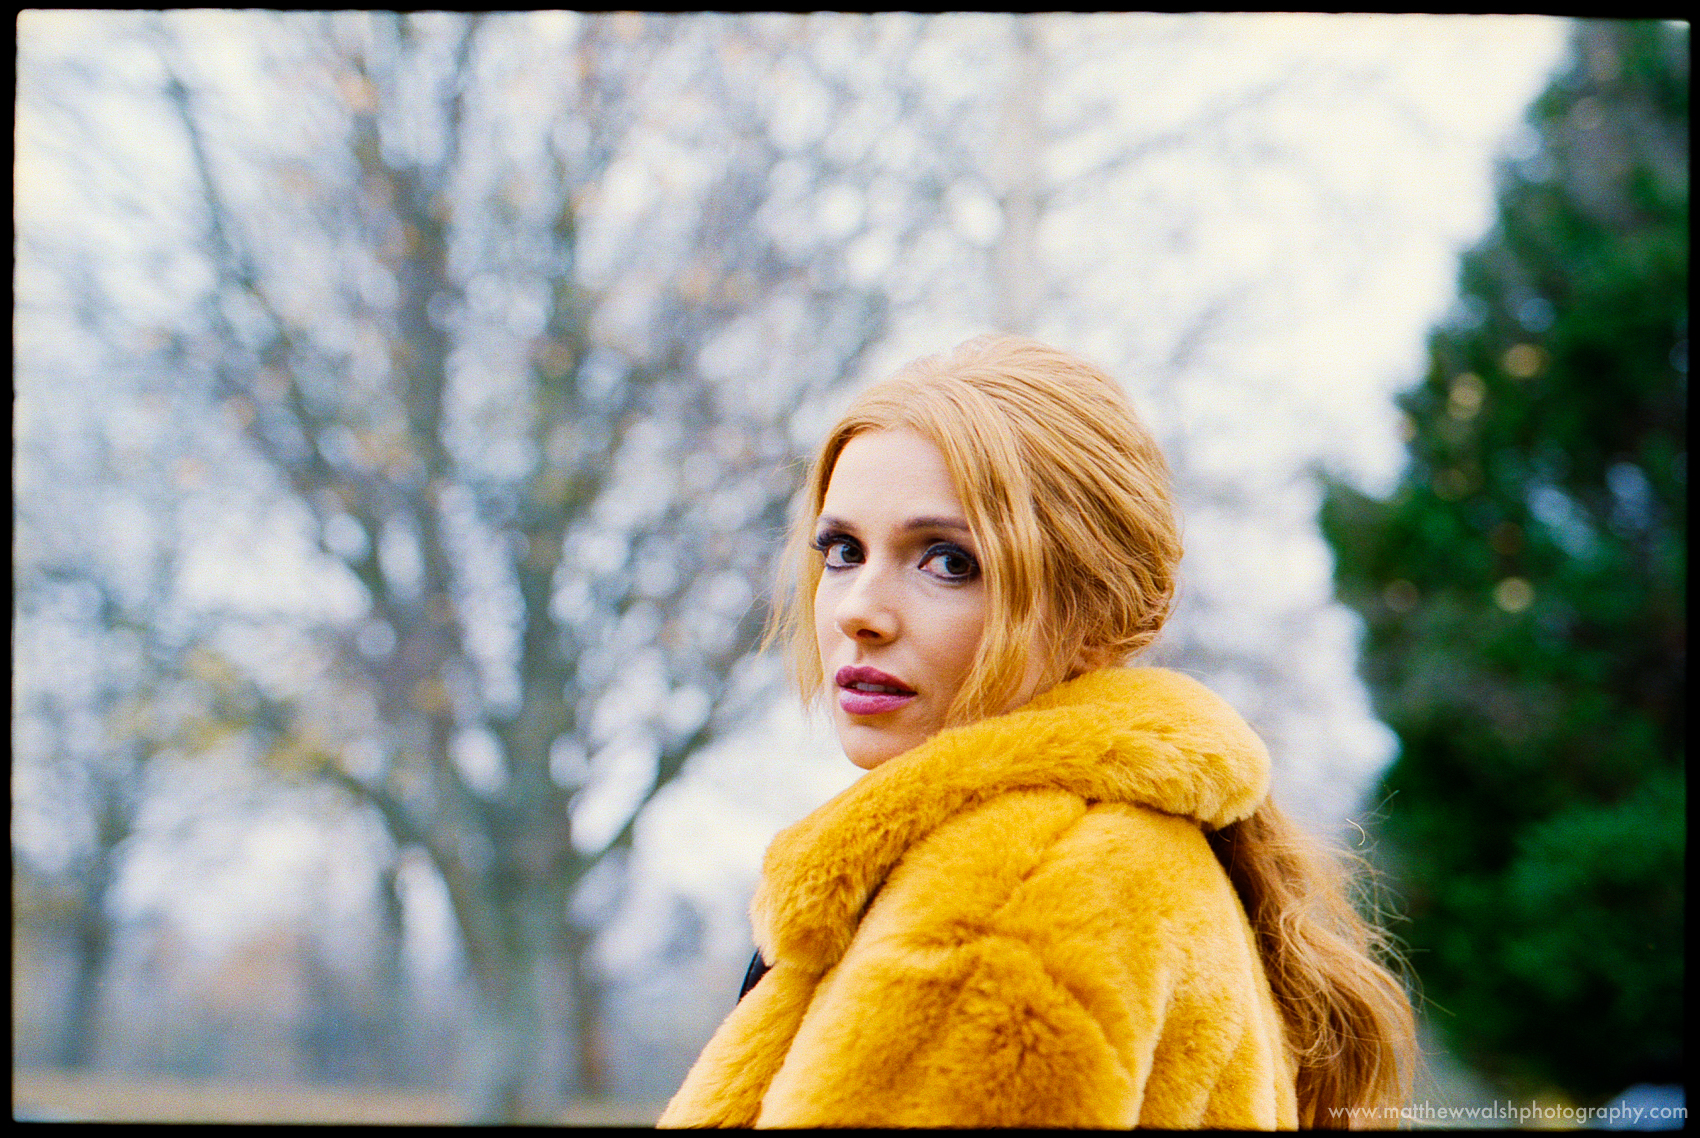 The model put on her own coat to keep warm I just knew the  colour would look great on Kodak Portra 400